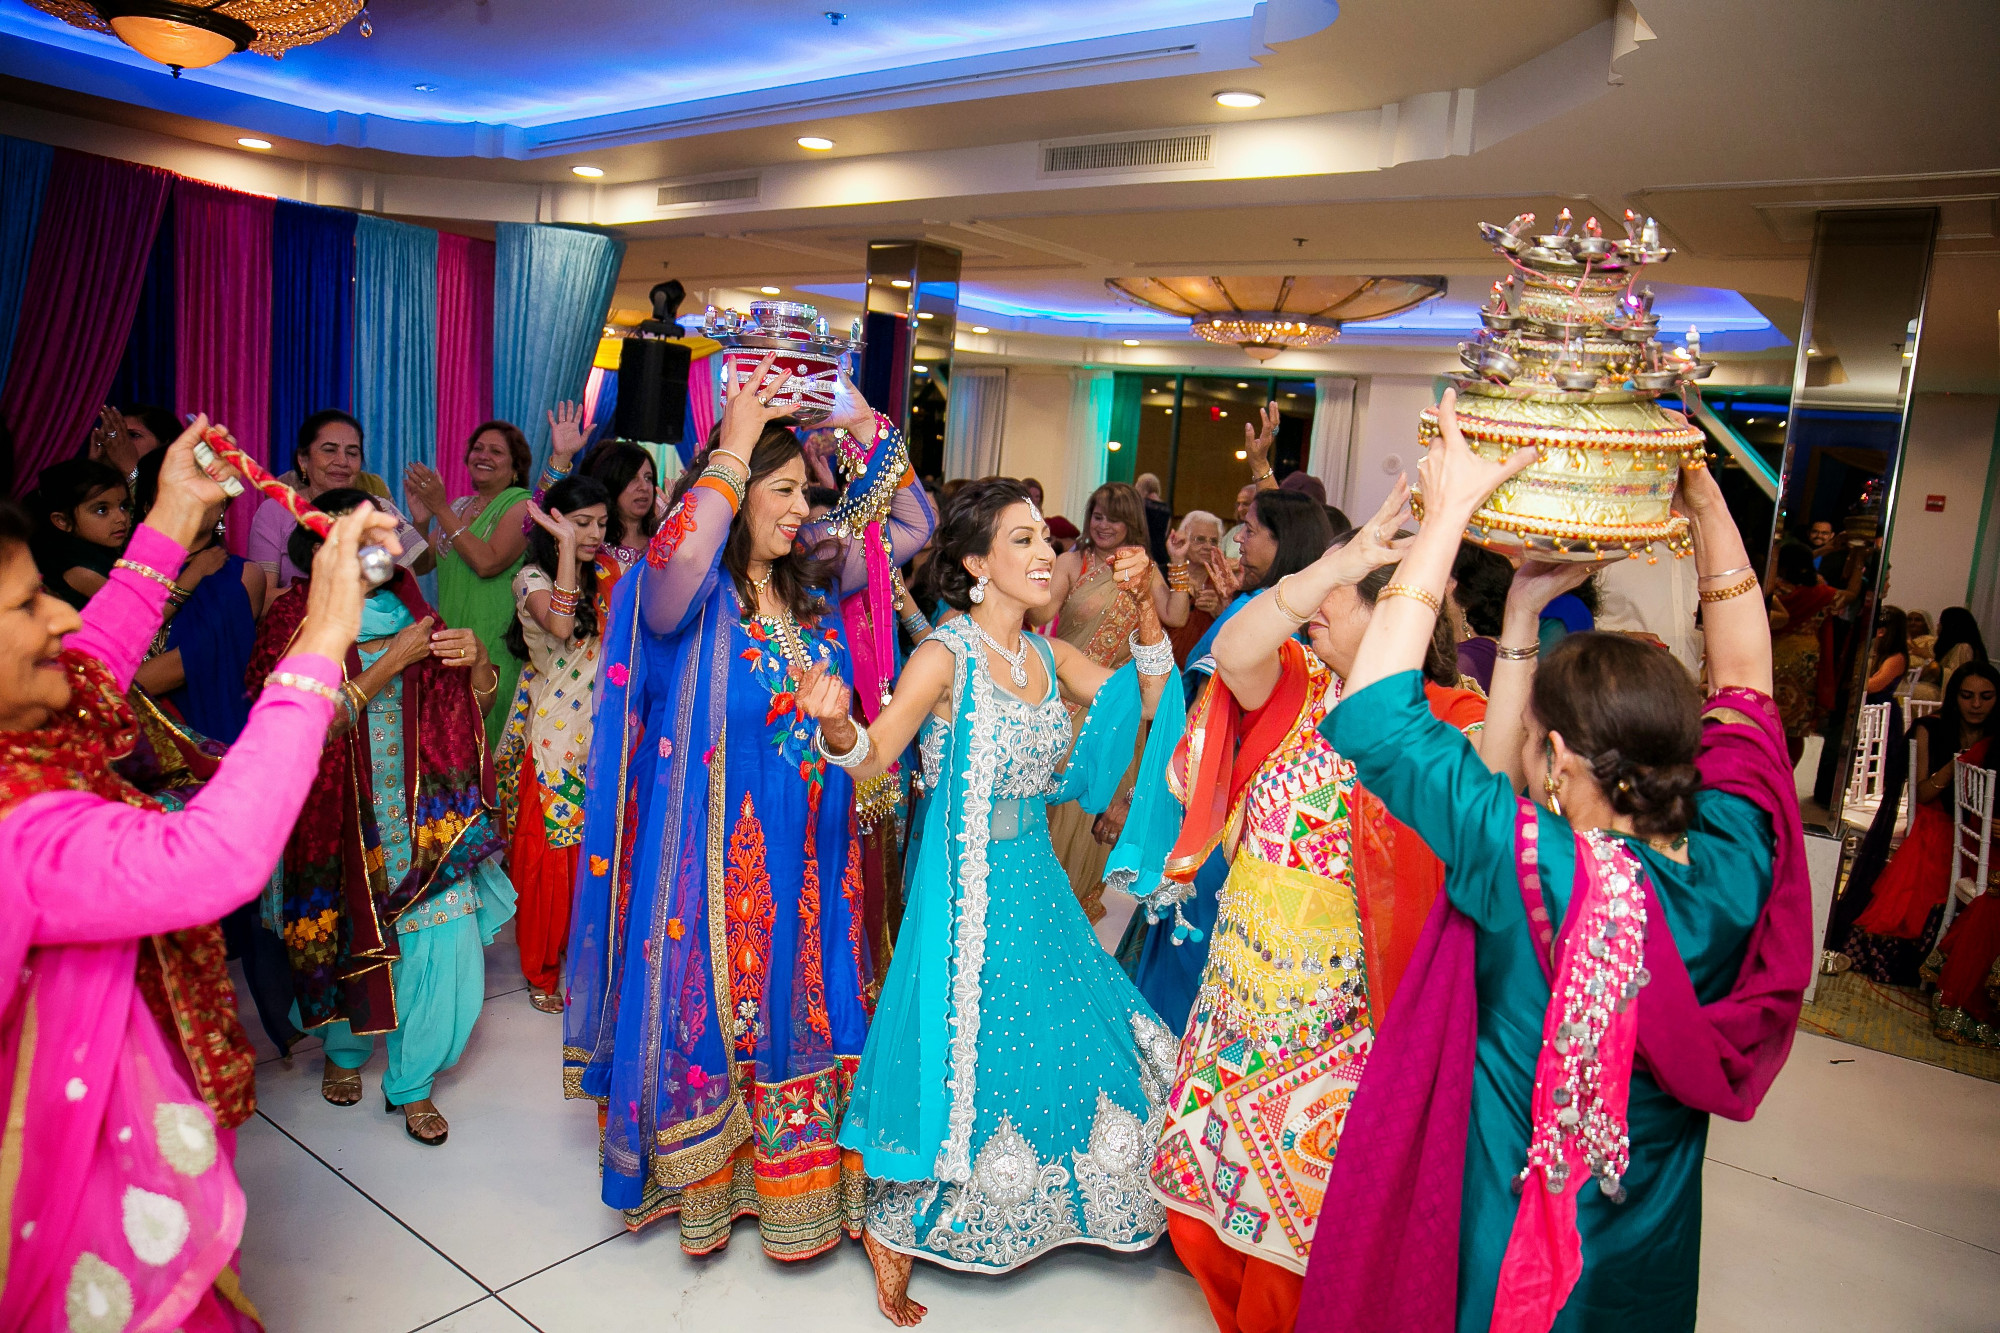 Hindu Wedding Gifts For Guests: Best Indian Wedding Venues In Los Angeles